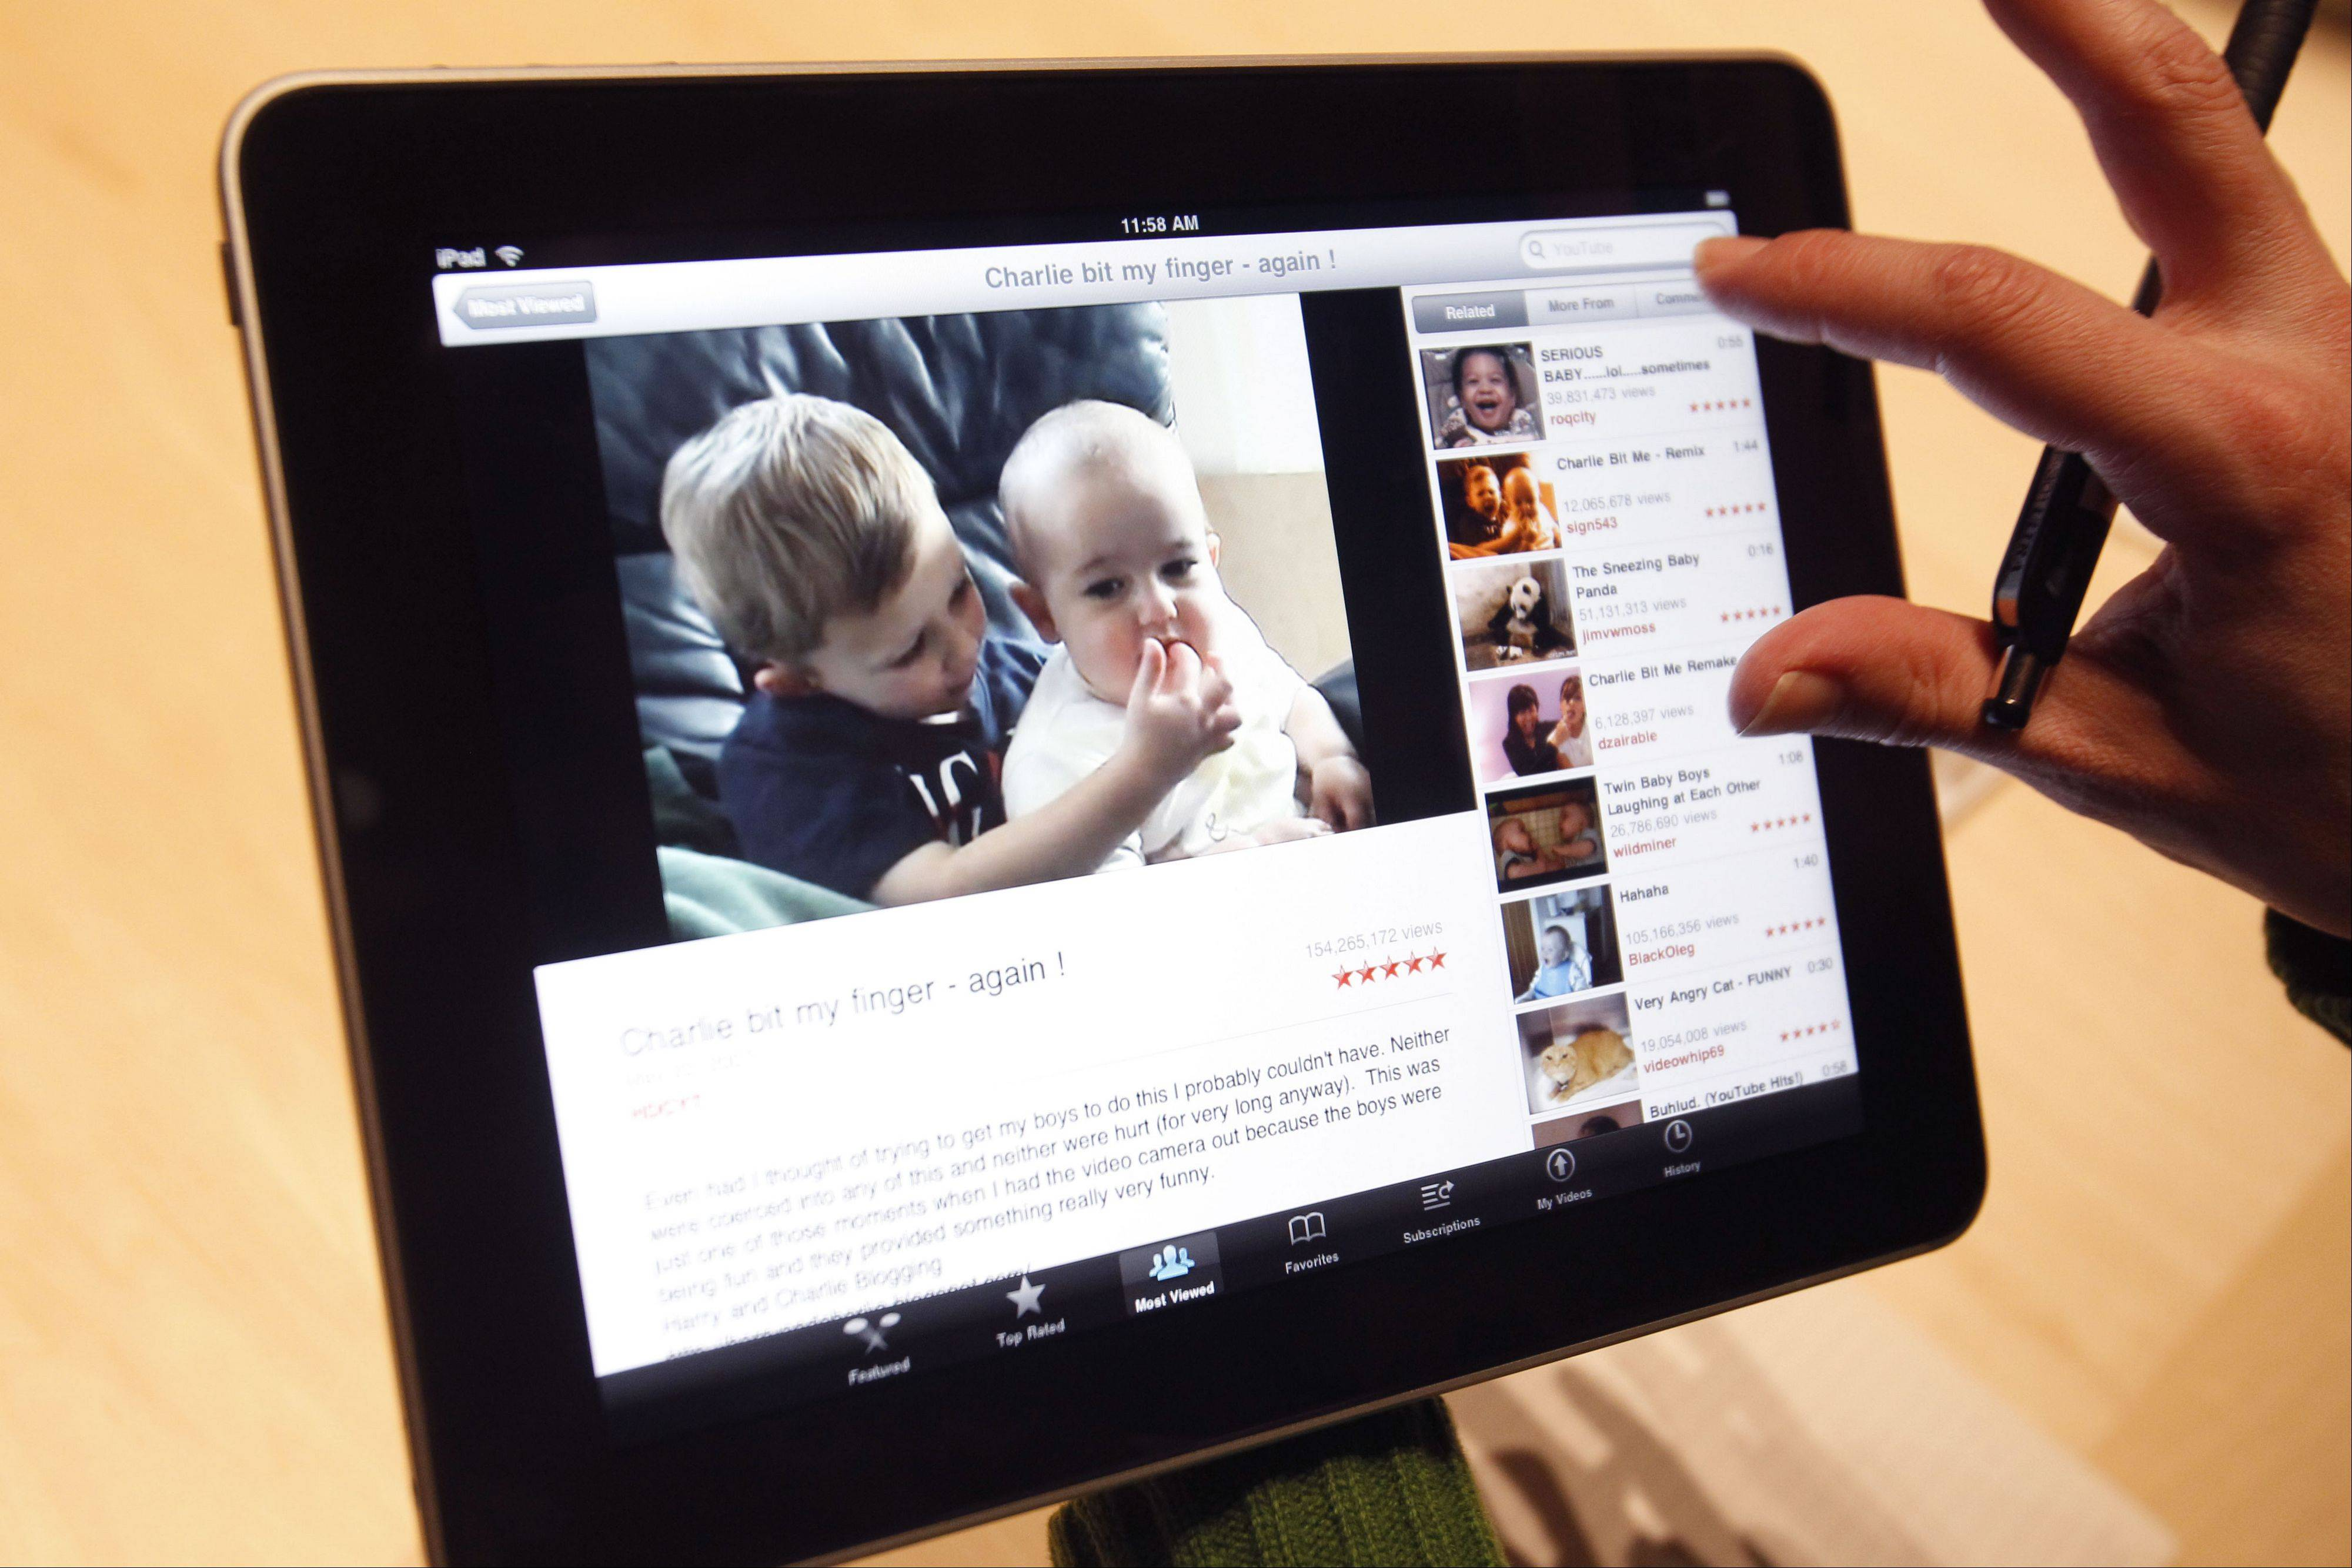 ASSOCIATED PRESS Apple stock slid Wednesday, in part over concerns the iPad was losing market share in the tablet battle.